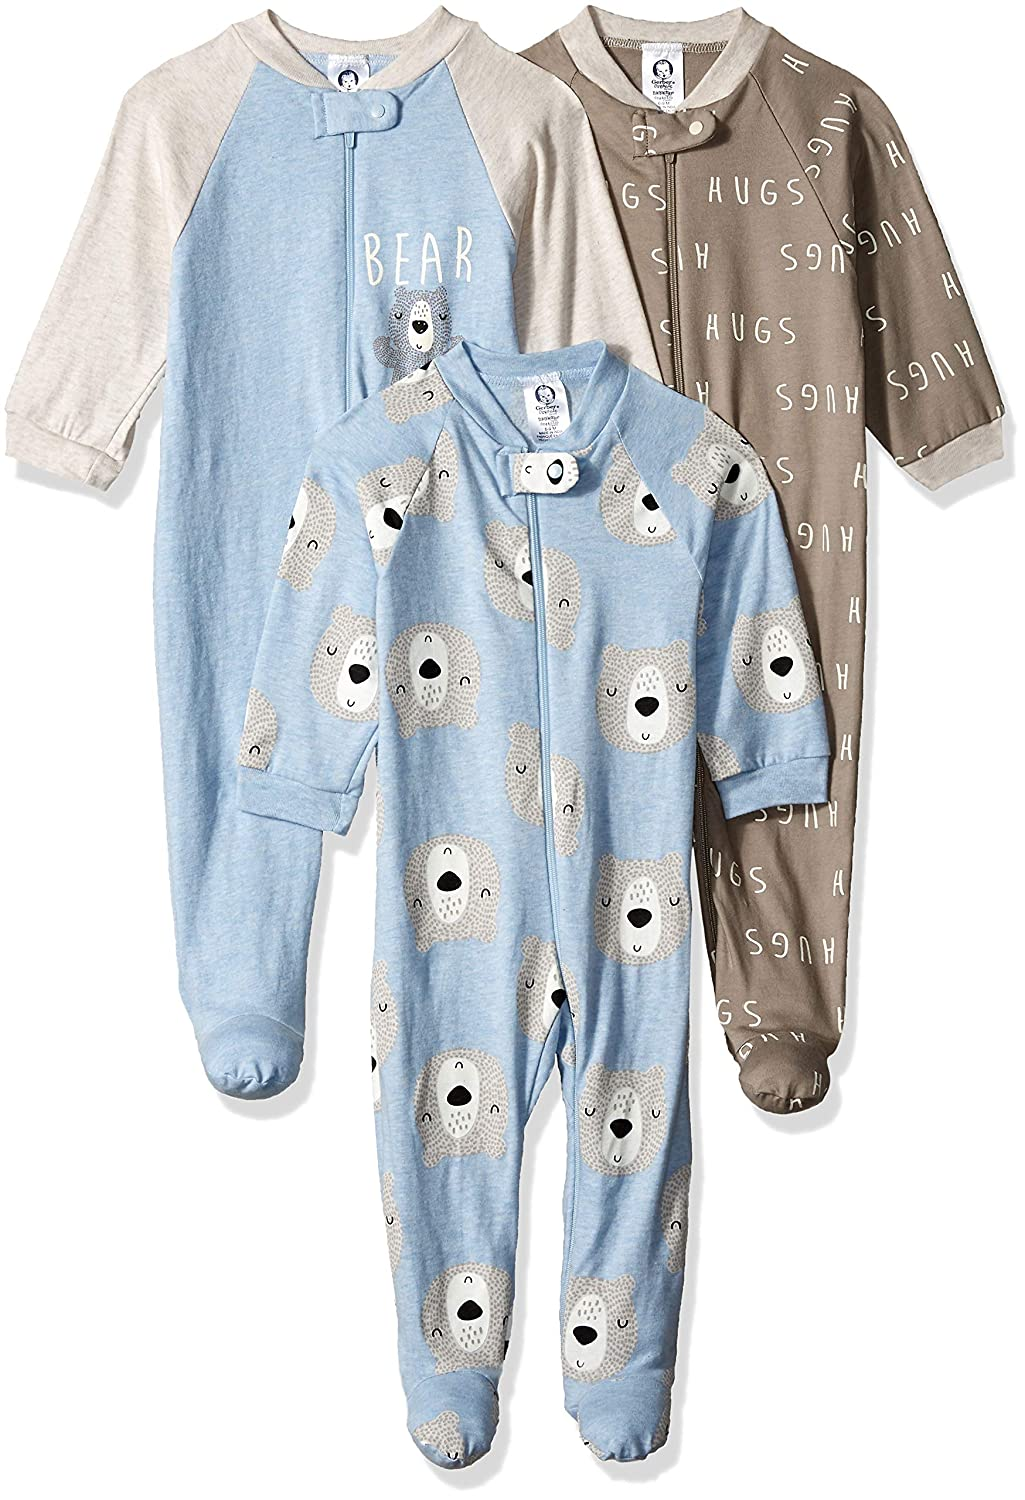 Gerber Baby Boys 3-Pack Organic Sleep N Play